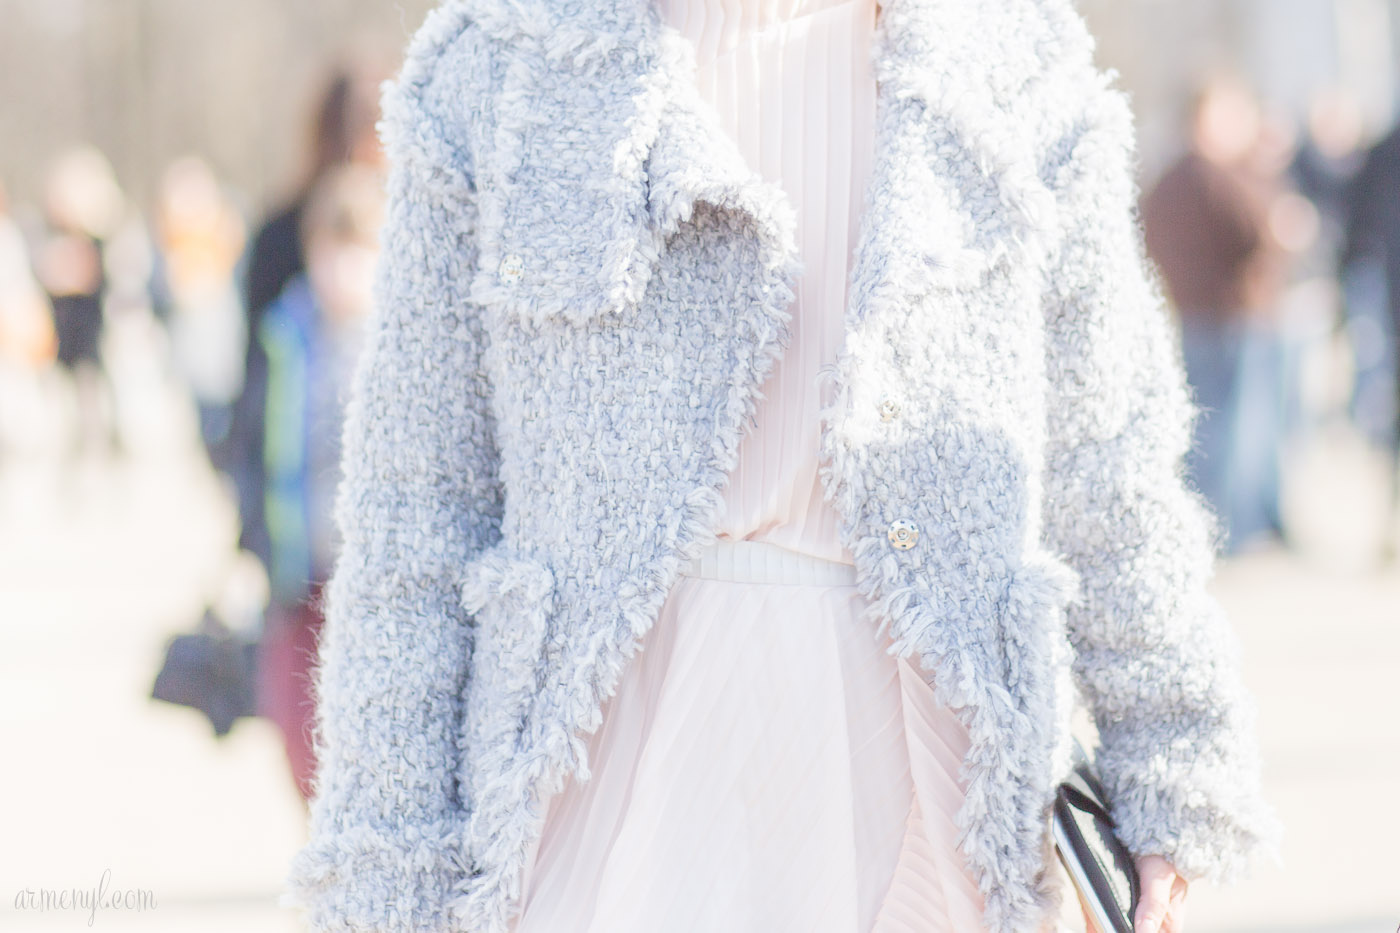 Soft tones, Pink and grey, pastel colors coats winter fashion at Paris Fashion Week Elie Saab AW 16 photographed by Armenyl.com